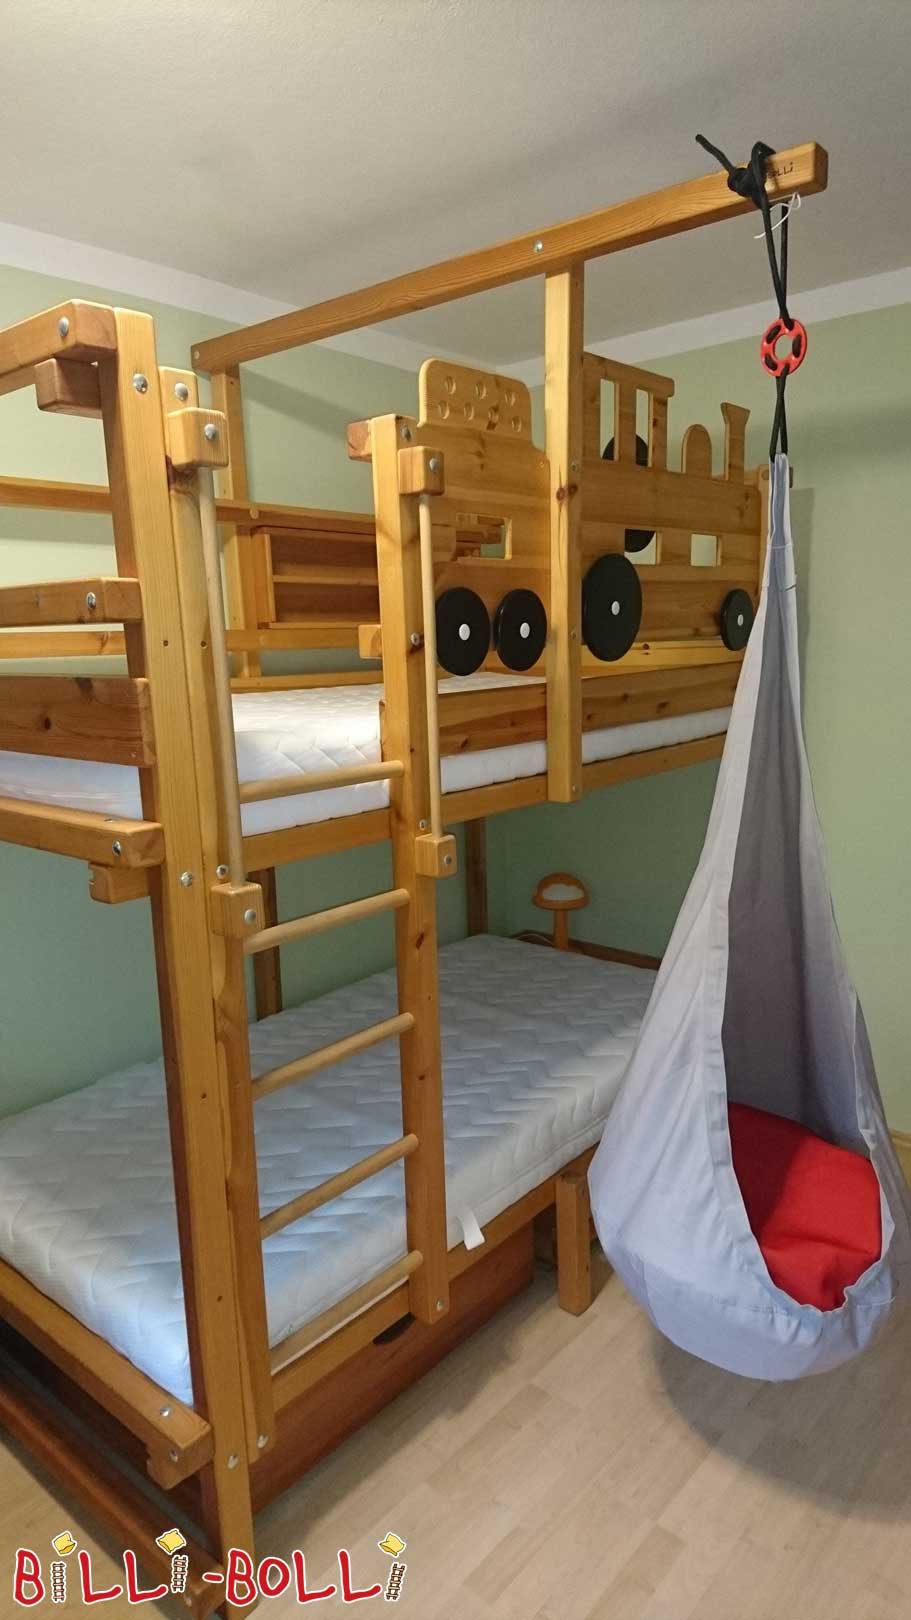 Bunk bed with railway boards (second hand bunk bed)